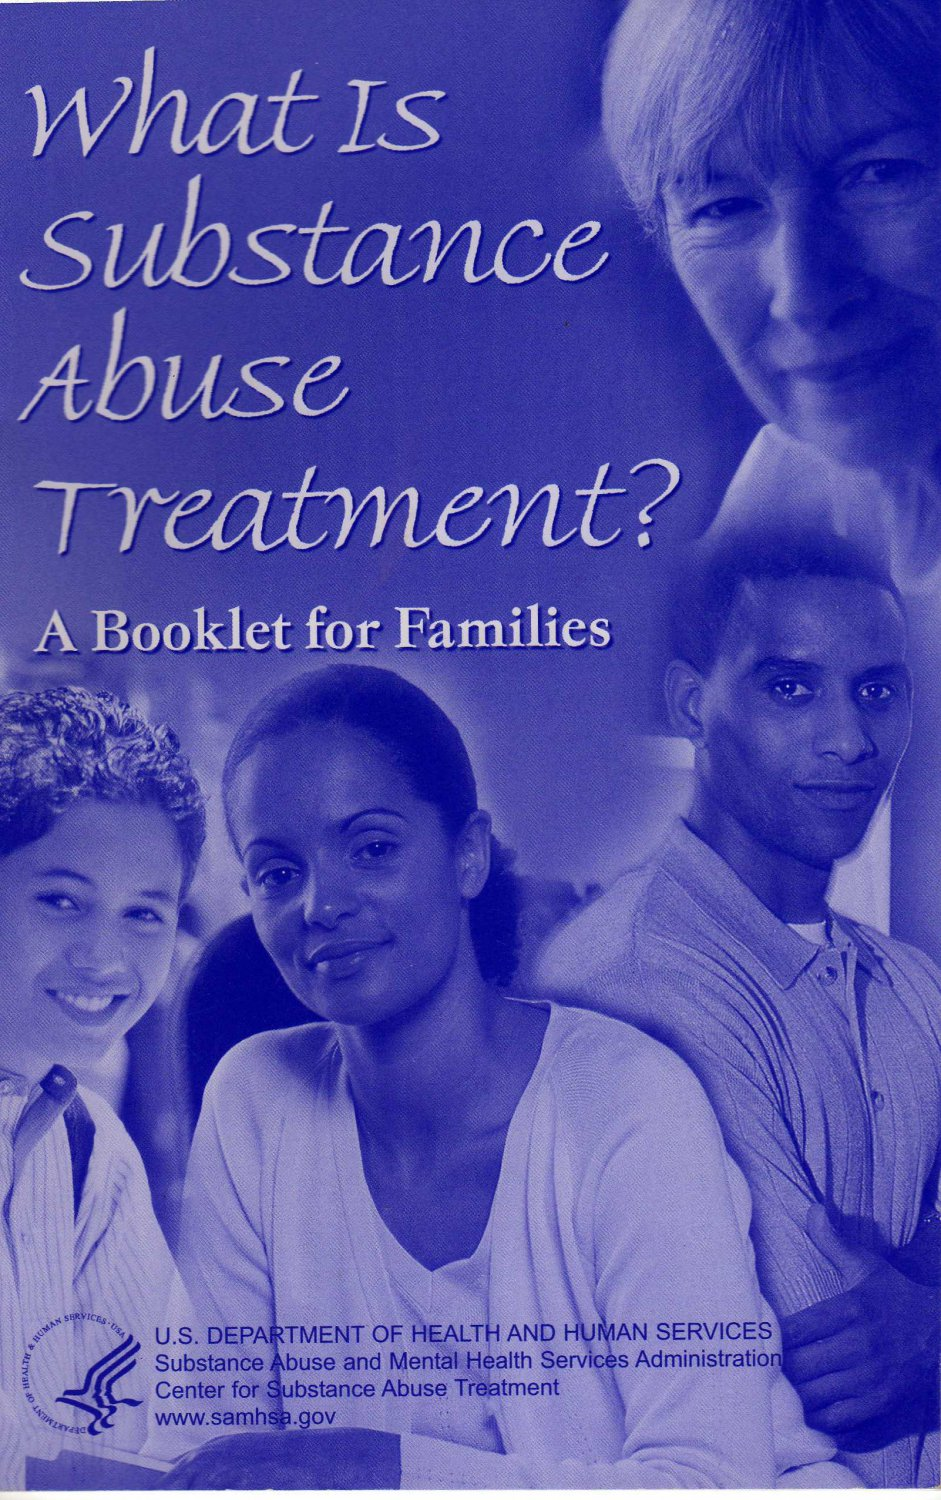 What is Substance Abuse Treatment? A Booklet for Families